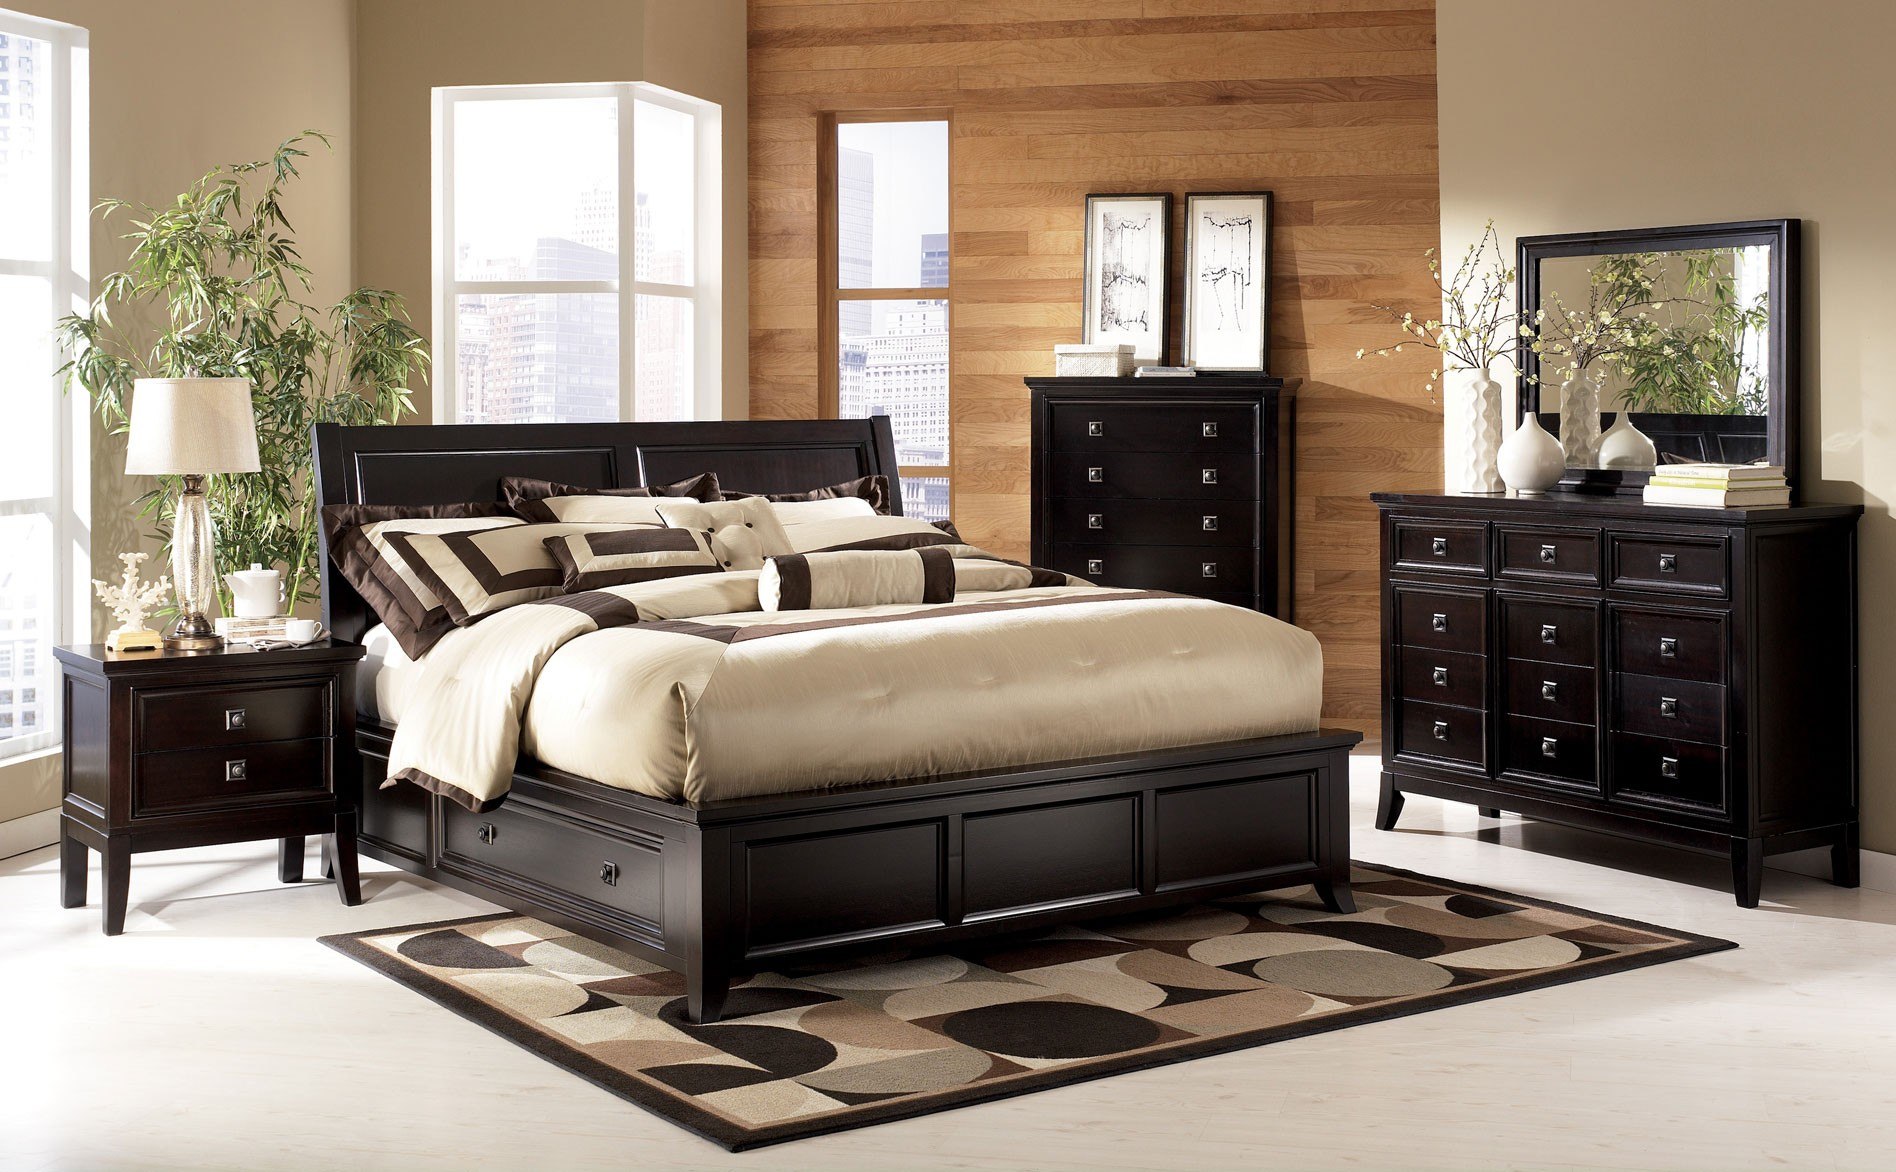 Brilliant ashley furniture fresno for home furniture with ashley furniture fresno ca